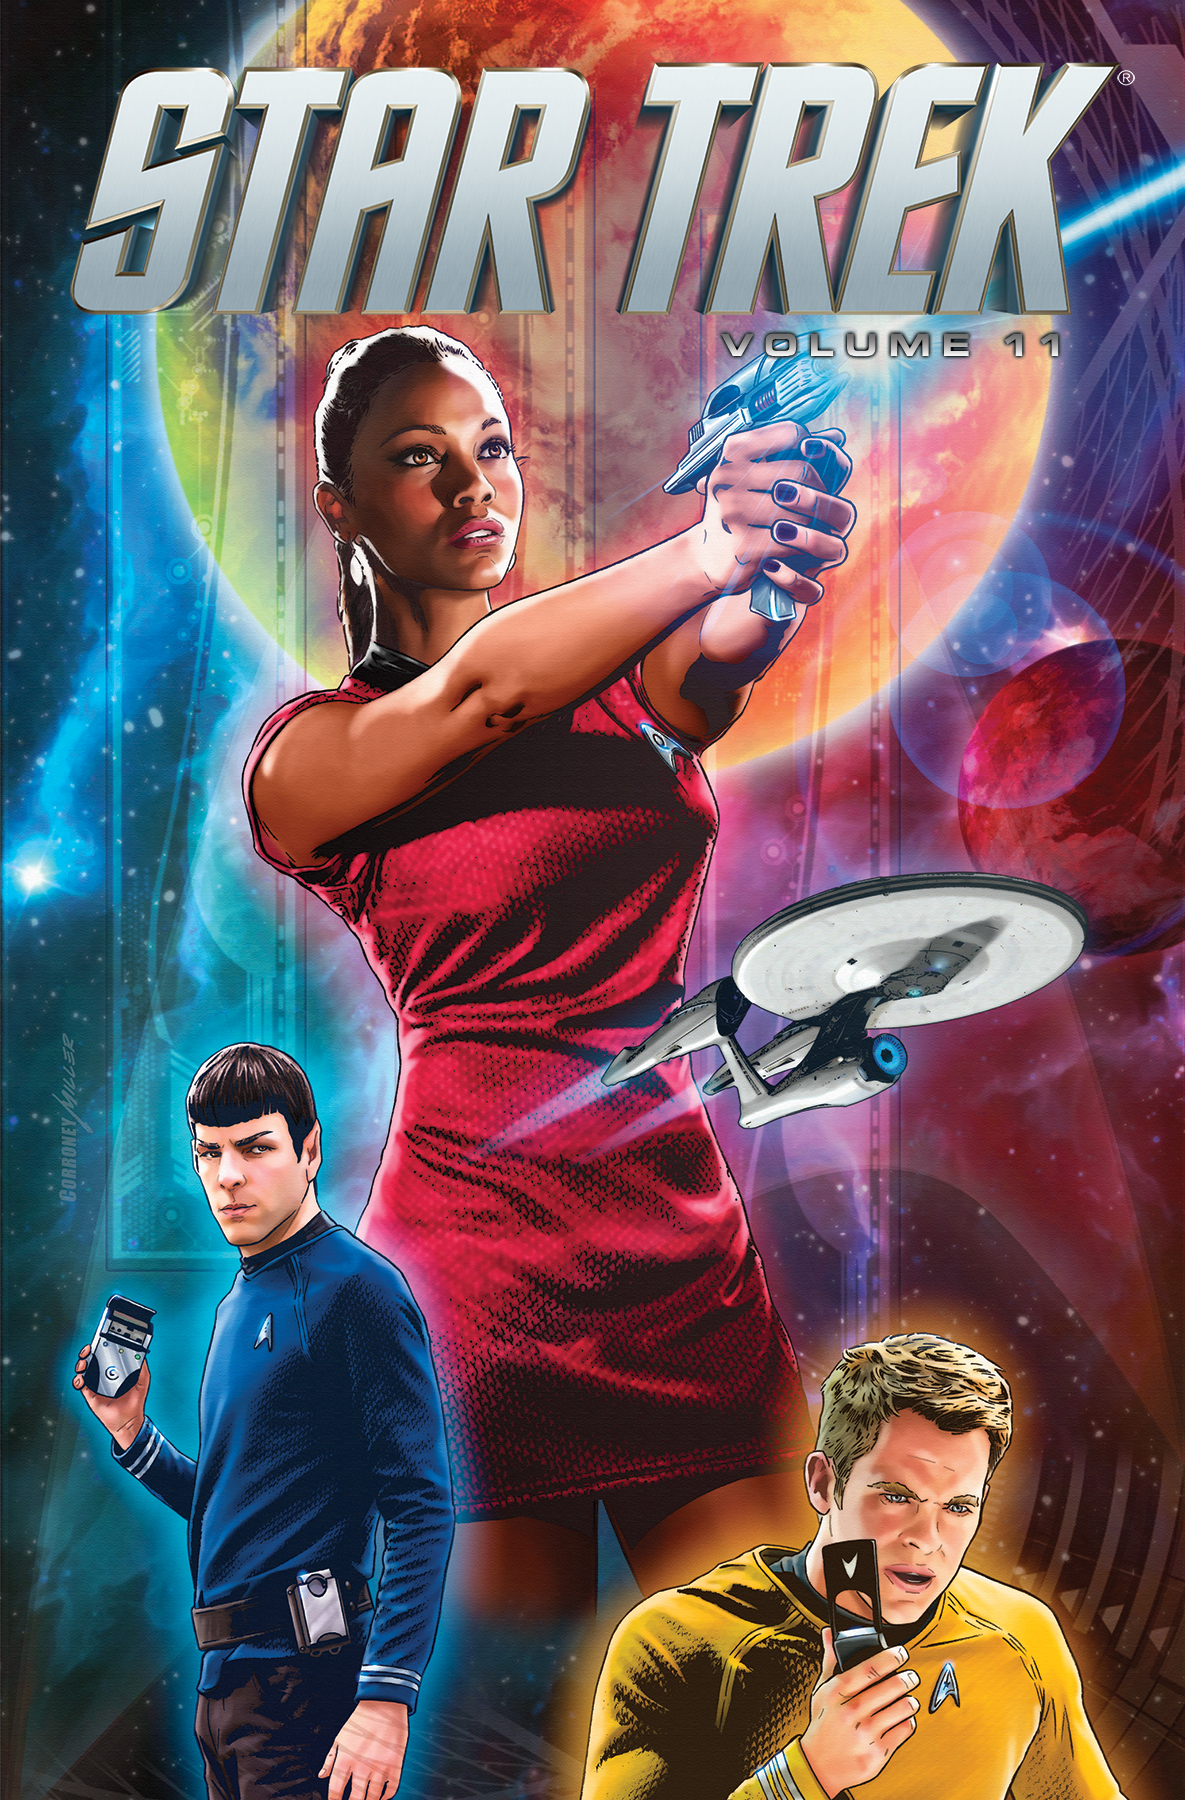 STARTREK_MOVIE_VOL11_TPB_COV